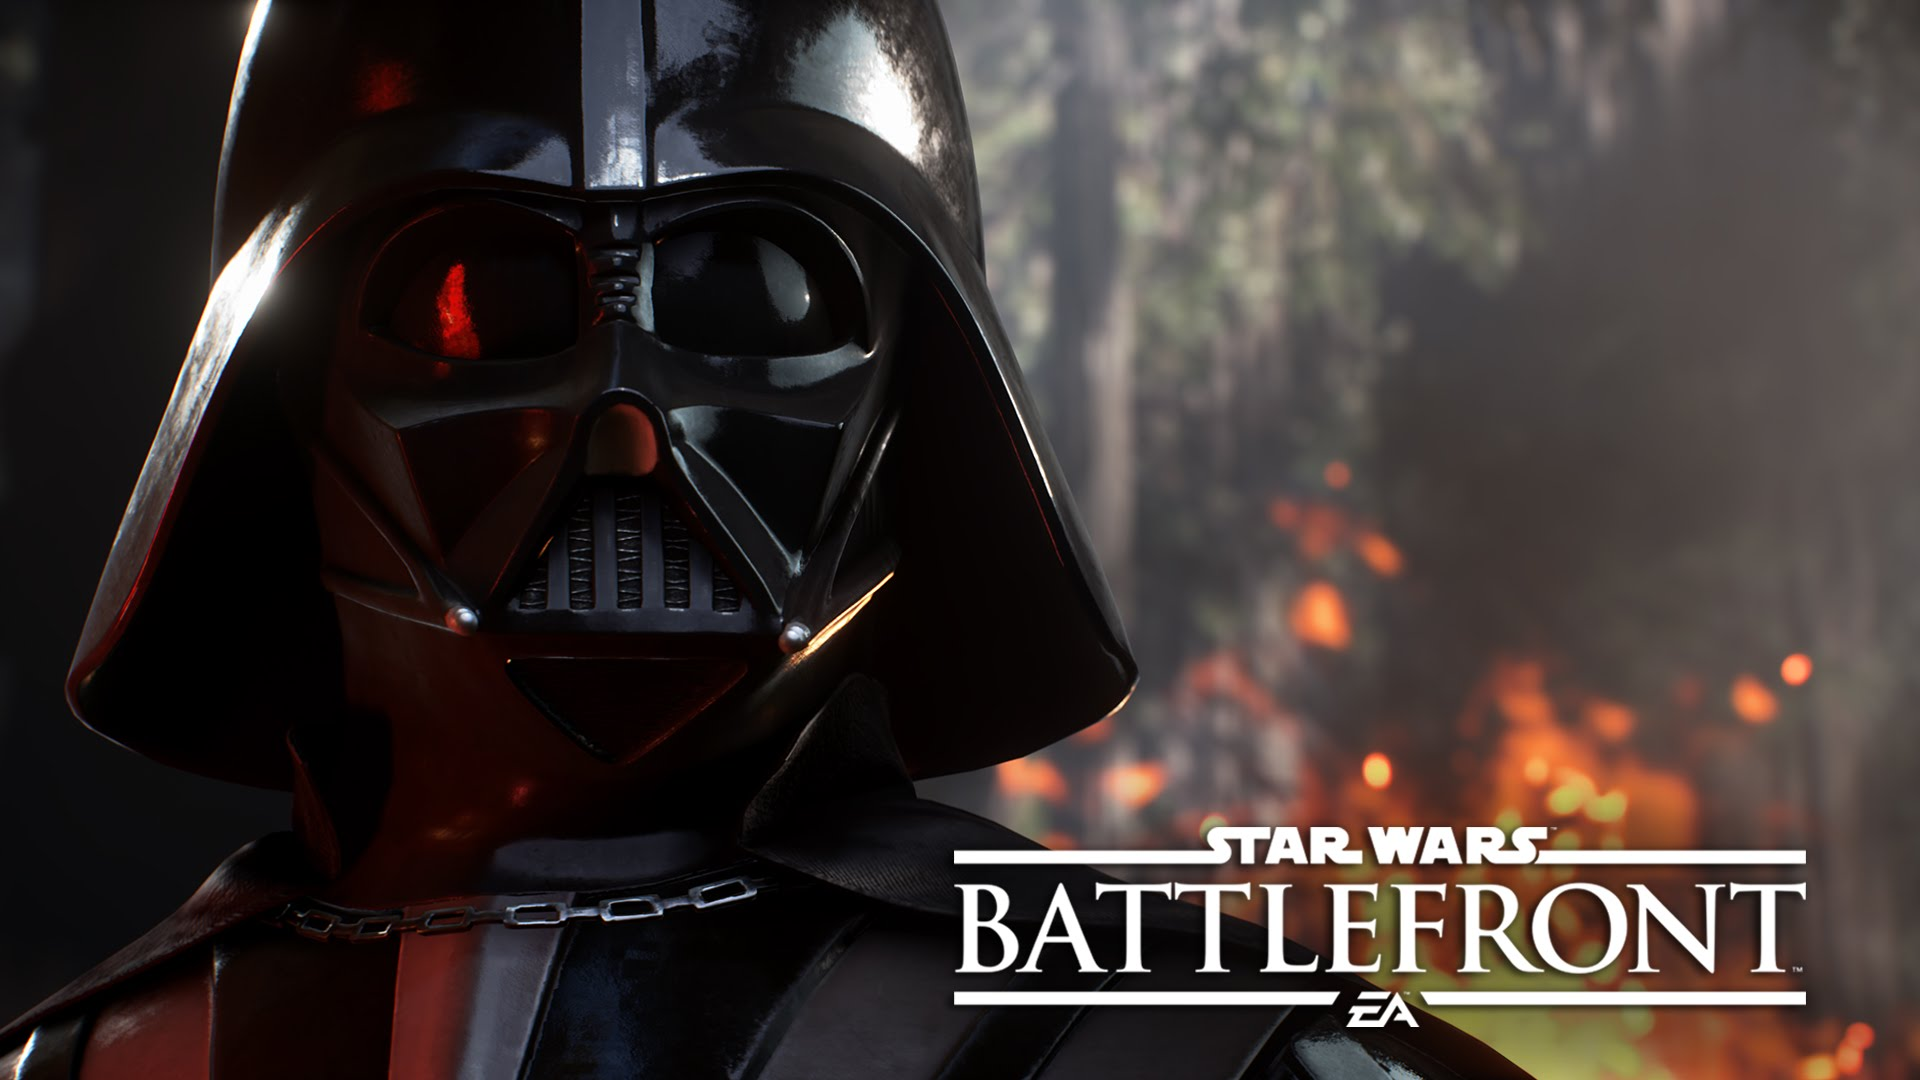 """Star Wars Battlefront"" Has a Season Pass - $50- That's Almost a Full Game"